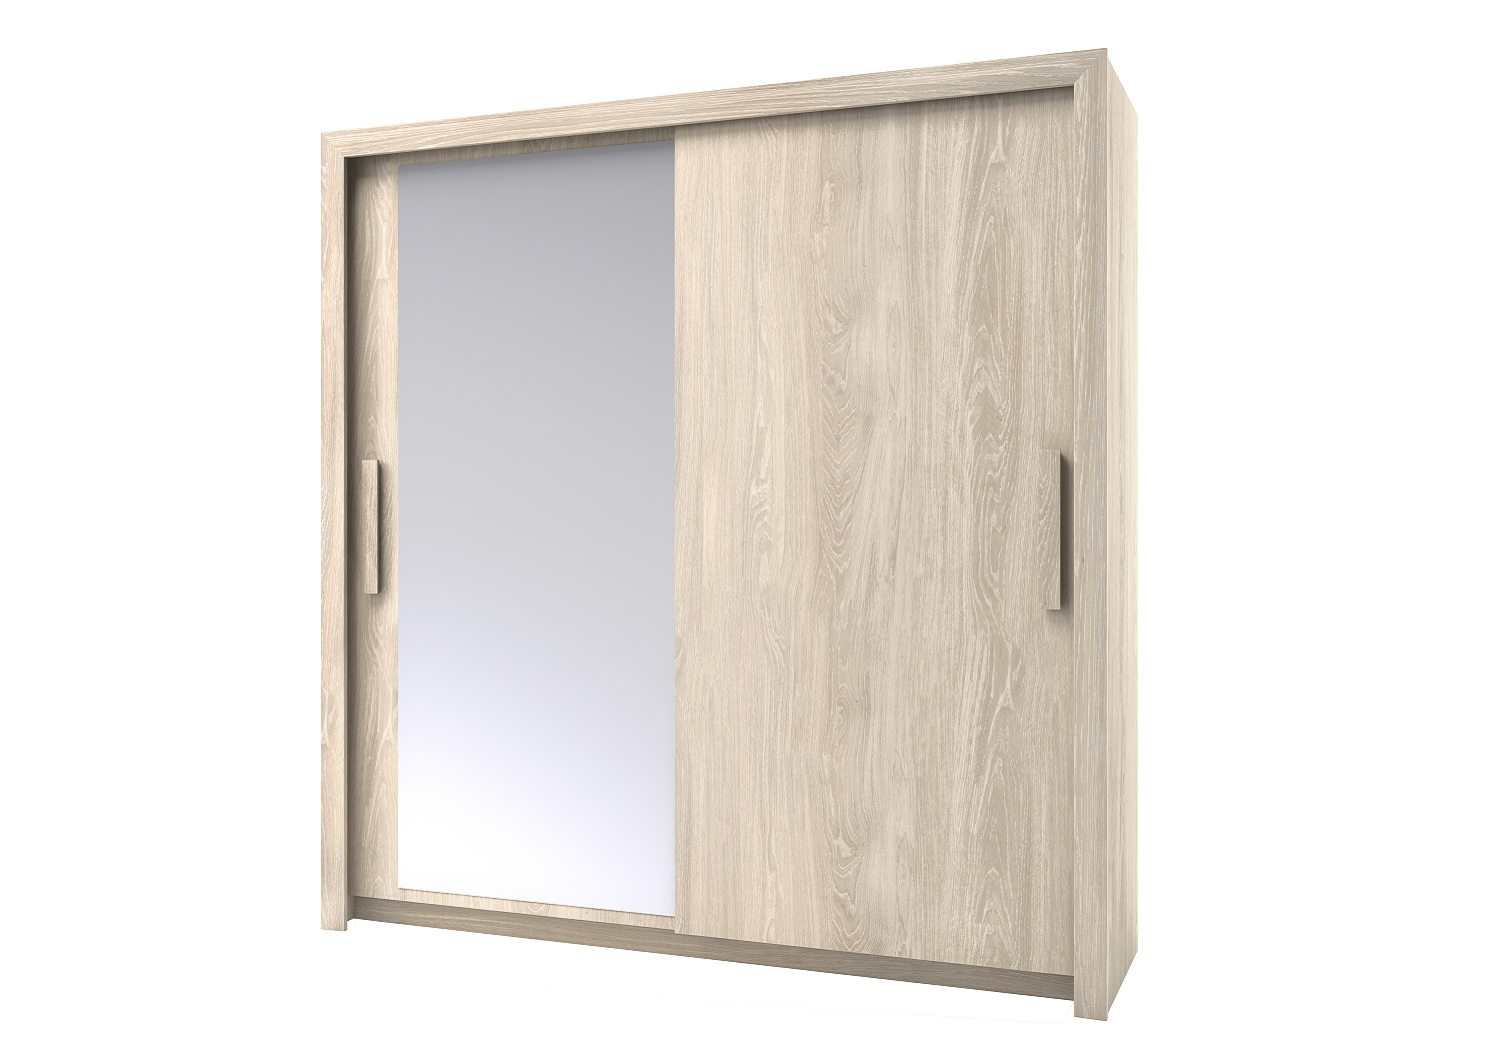 Bilrich Storage Furniture - Perfect Wardrobe 201cm Light Oak